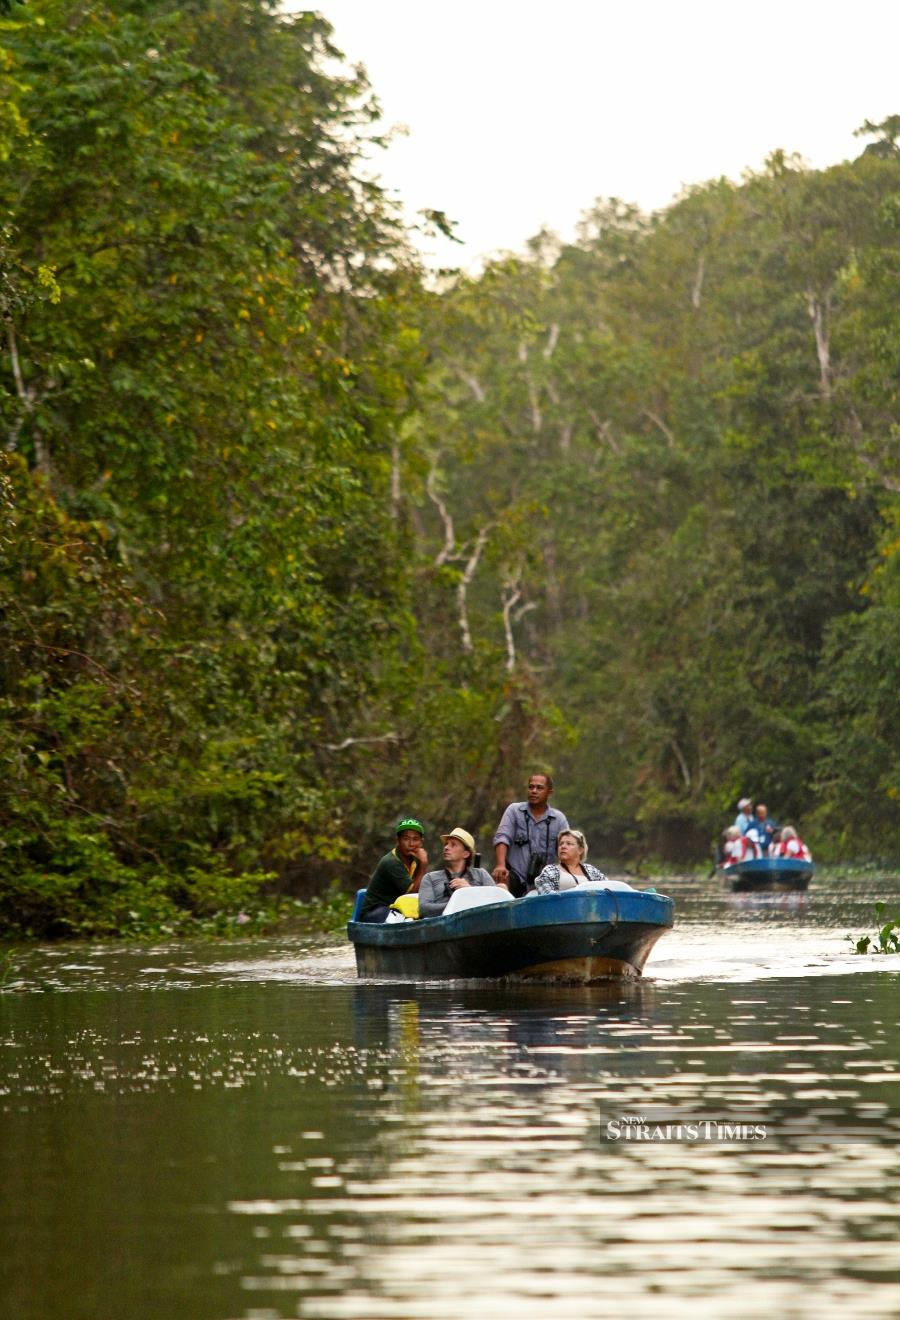 Much of Malaysia was once covered by lowland rainforest, high altitude montane forests and coastal mangroves.